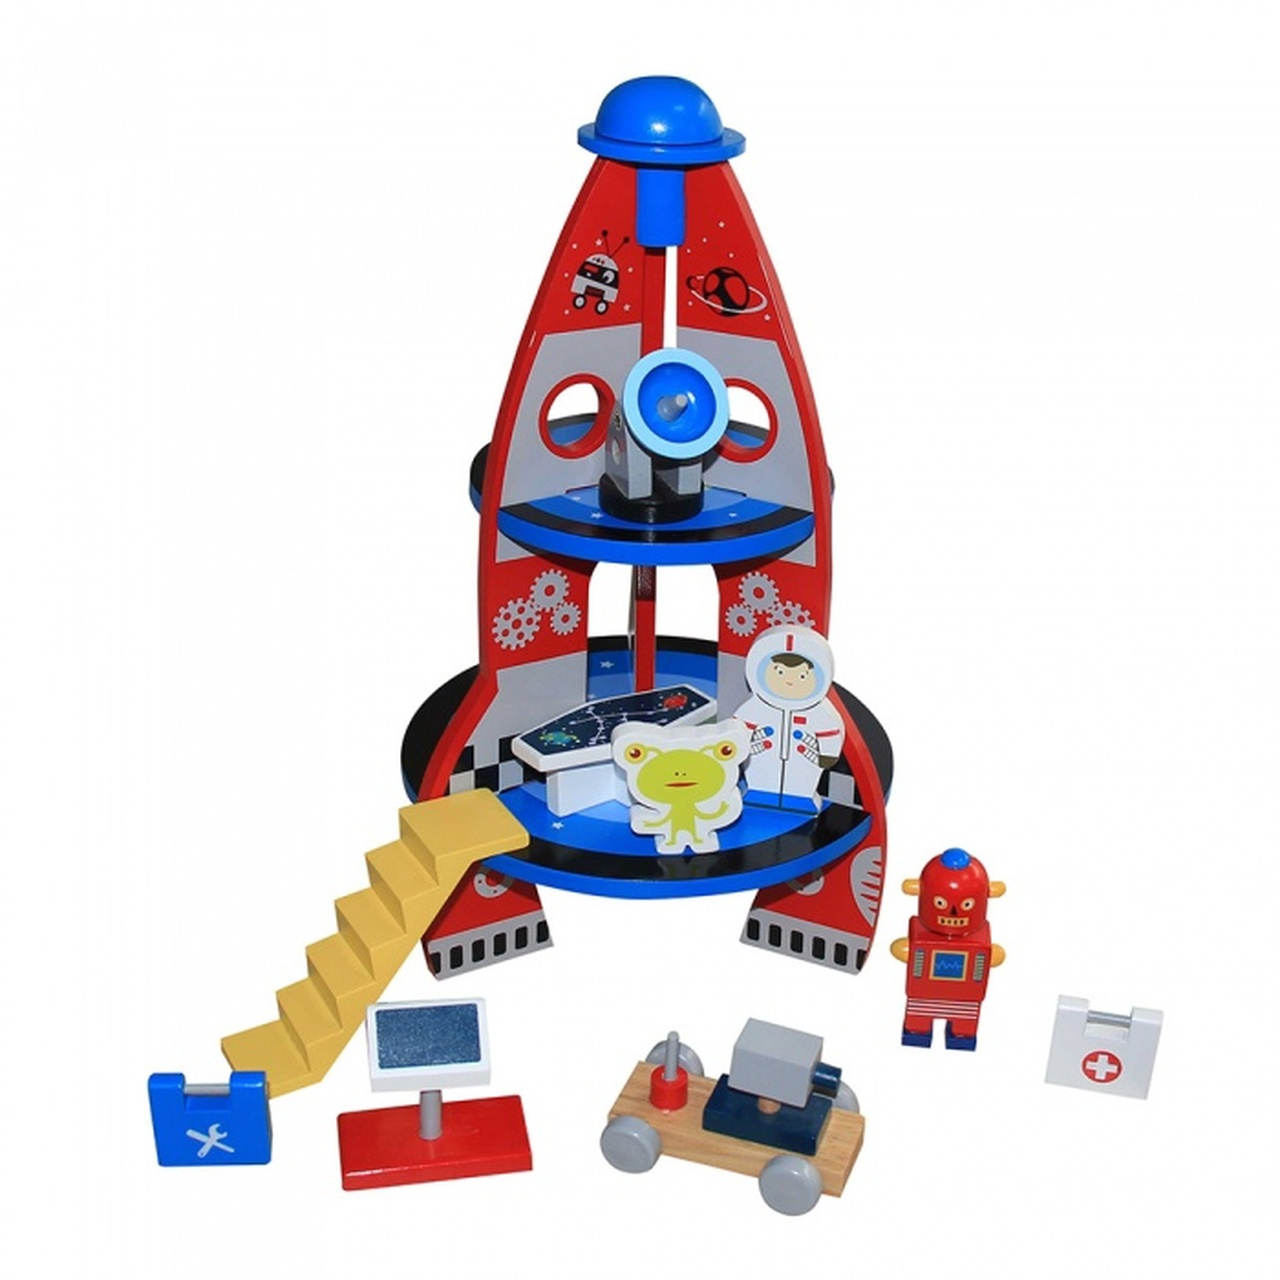 Toyslink Wooden Spaceship Playset at Baby Barn Discounts A charming wooden spaceship and accessories, make your pretend play out of this world!